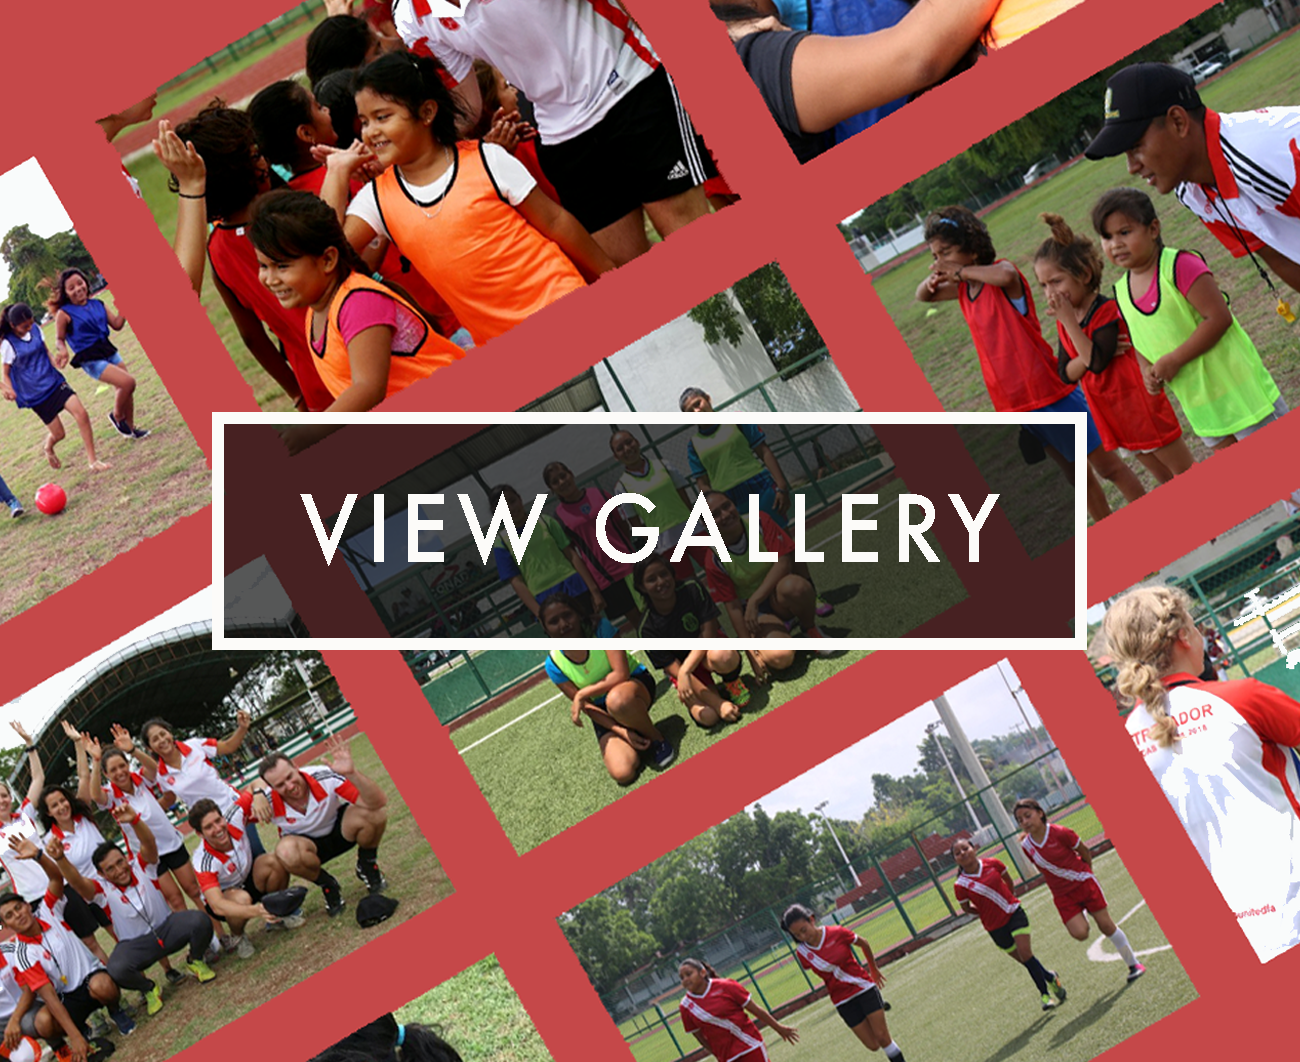 VIEW OUR CLUB MEXICO PHOTO GALLERY